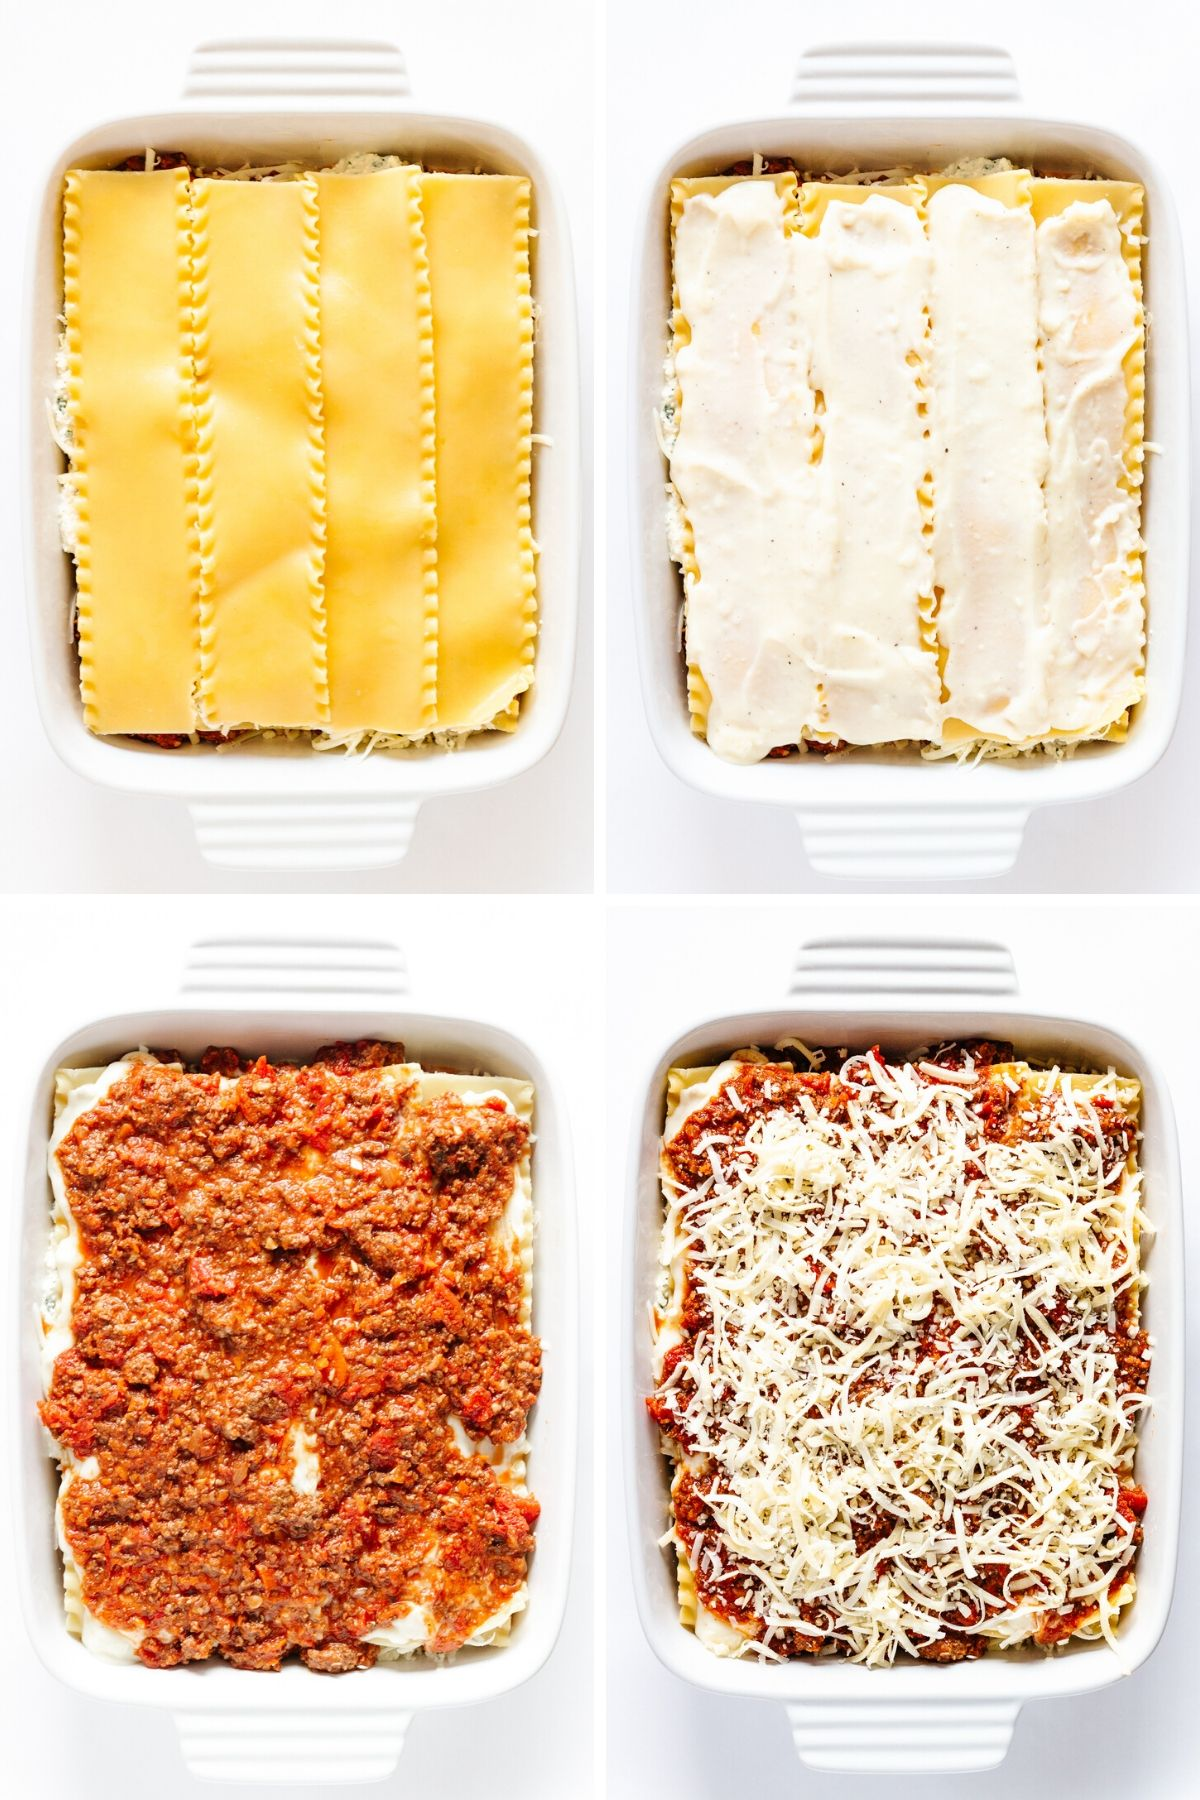 Collage of photos showing the steps in the third layer of lasagna assembly.